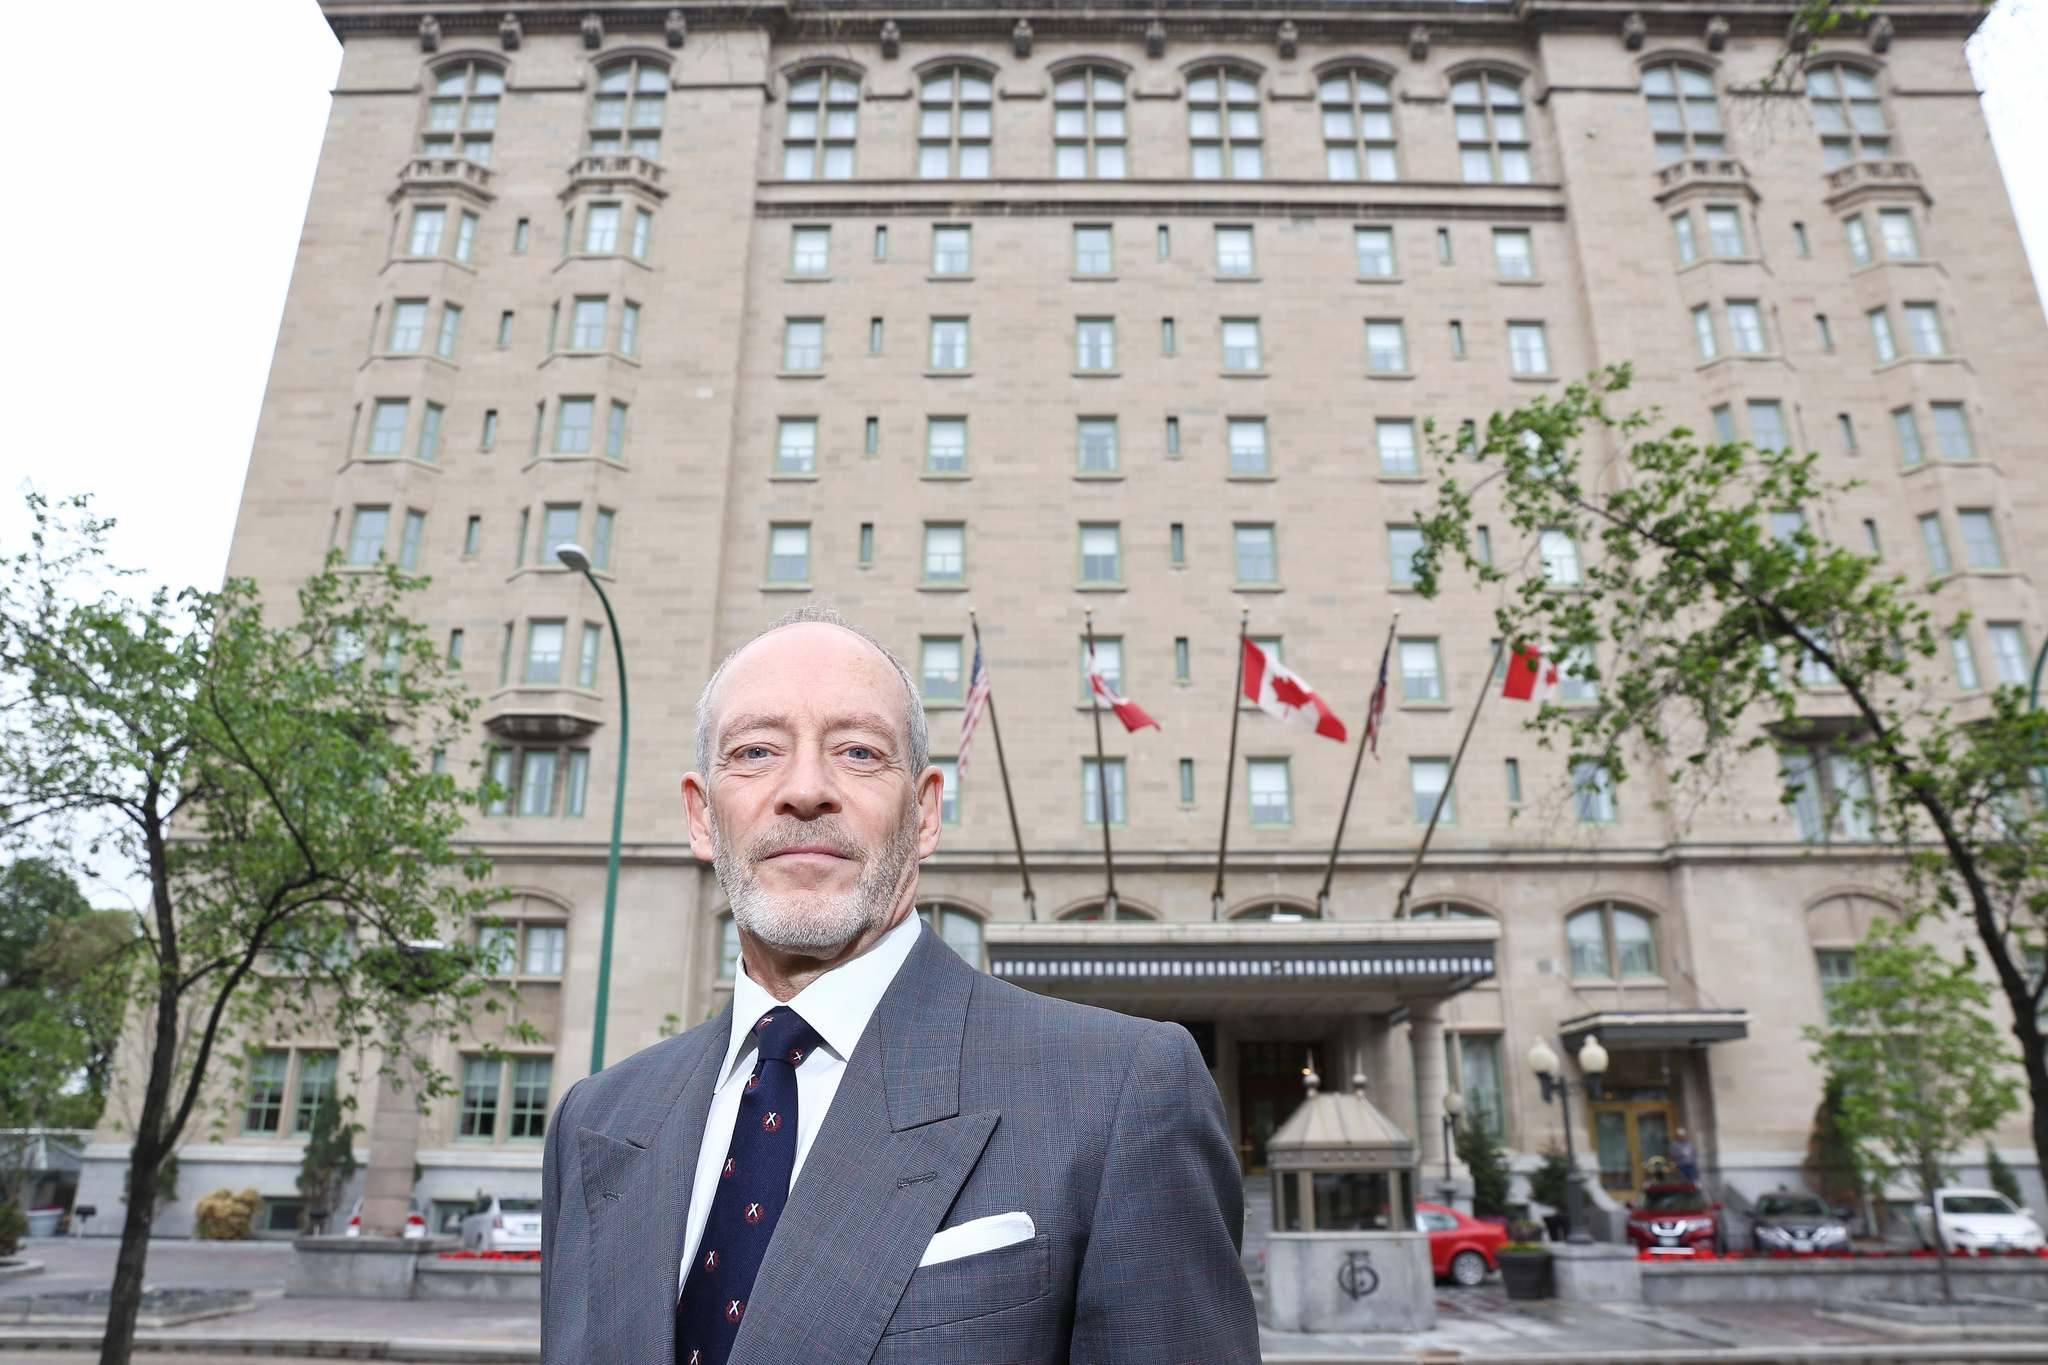 John Perrin's family owned the Hotel Fort Garry when it was taken for tax sale - but as the family says the taxes were based on a wildly inflated assessment. He wants an apology from the province. (Mike Deal / Winnipeg Free Press)</p>